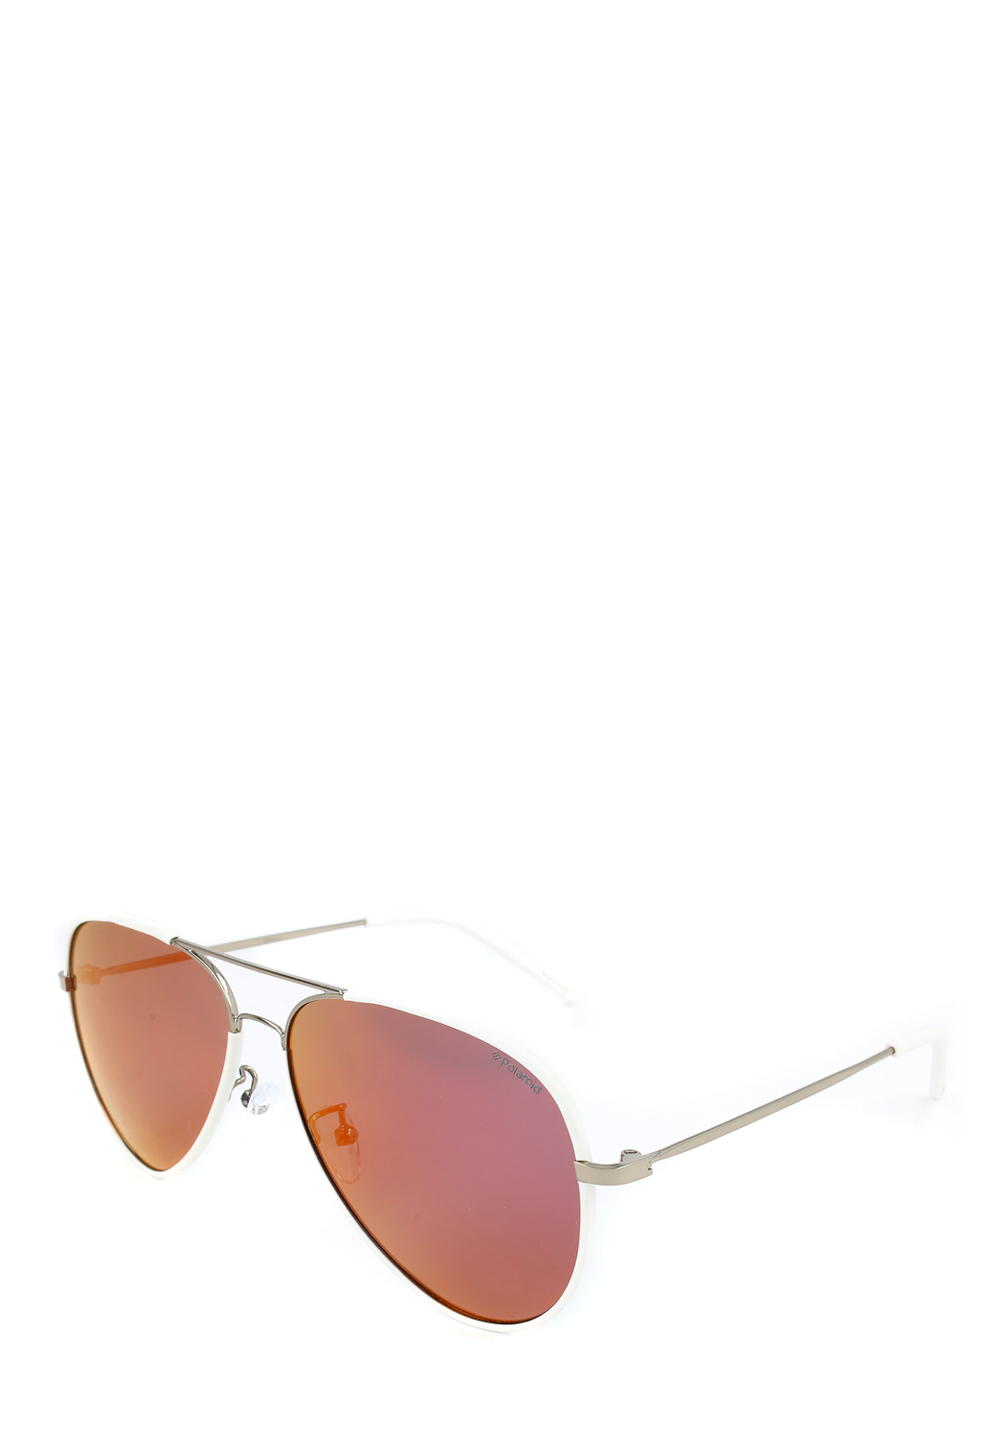 Sonnenbrille Pld1020/F/S, polarized, Uv400 gold